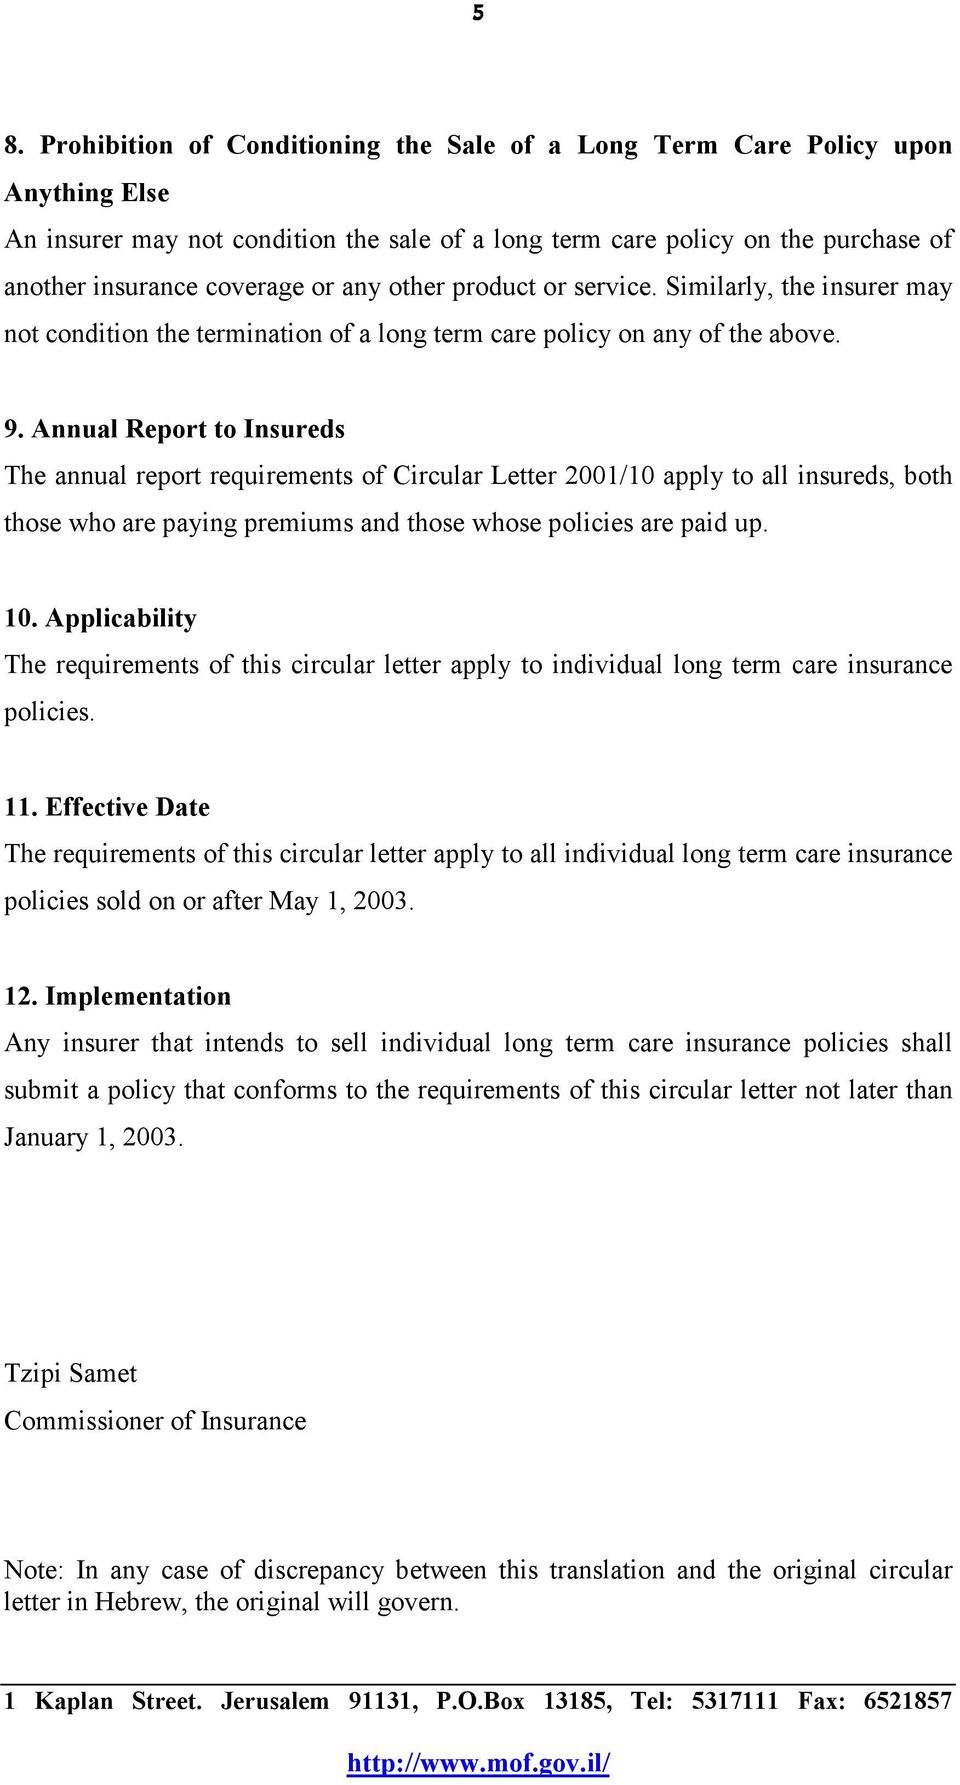 Annual Report to Insureds The annual report requirements of Circular Letter 2001/10 apply to all insureds, both those who are paying premiums and those whose policies are paid up. 10.